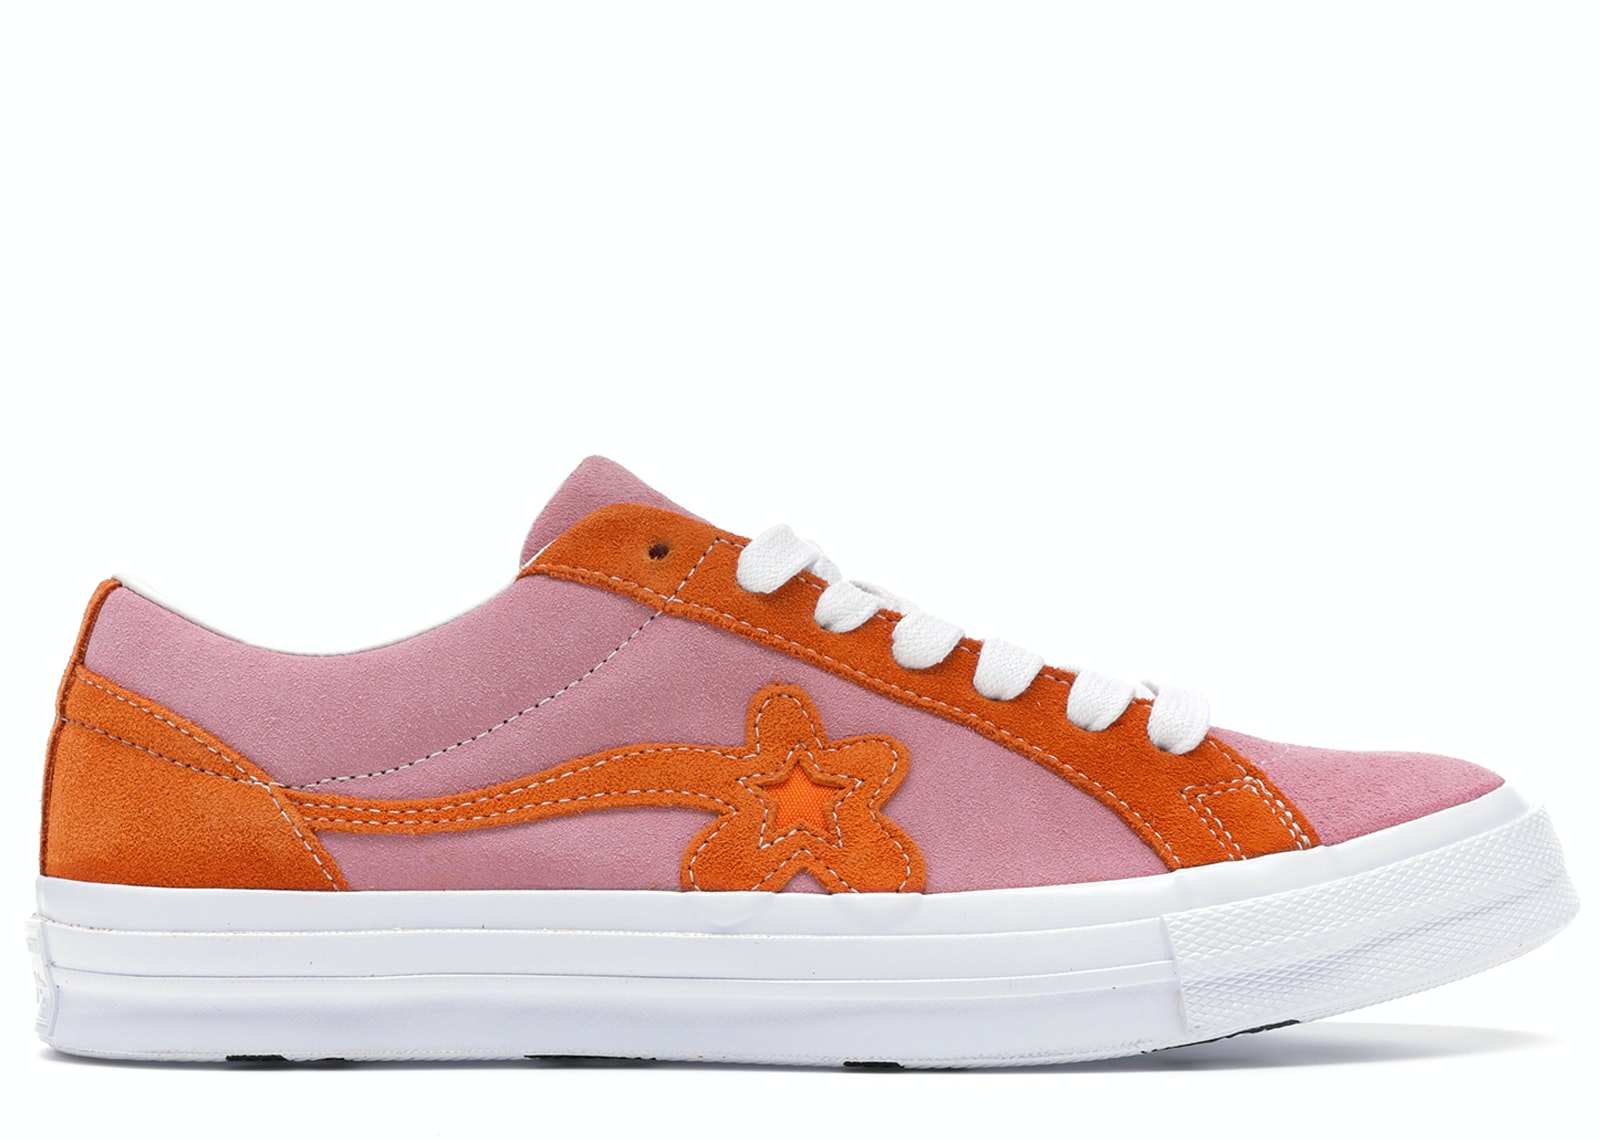 Converse One Star Ox Tyler the Creator Golf Le Fleur Pink Orange